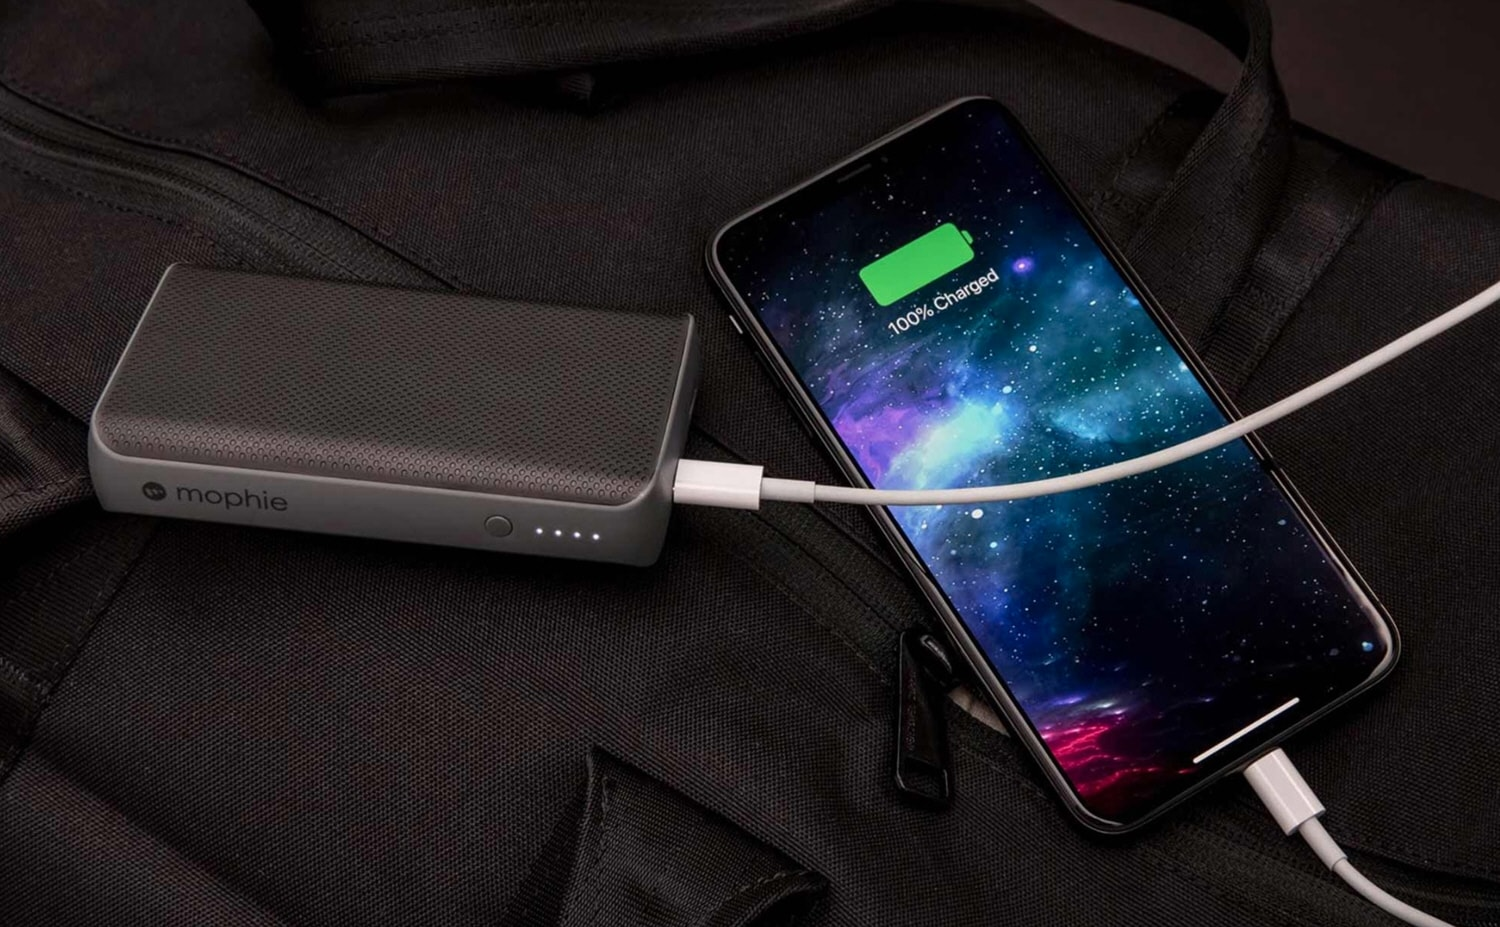 Charge your iPhone 2.5 times faster on the go